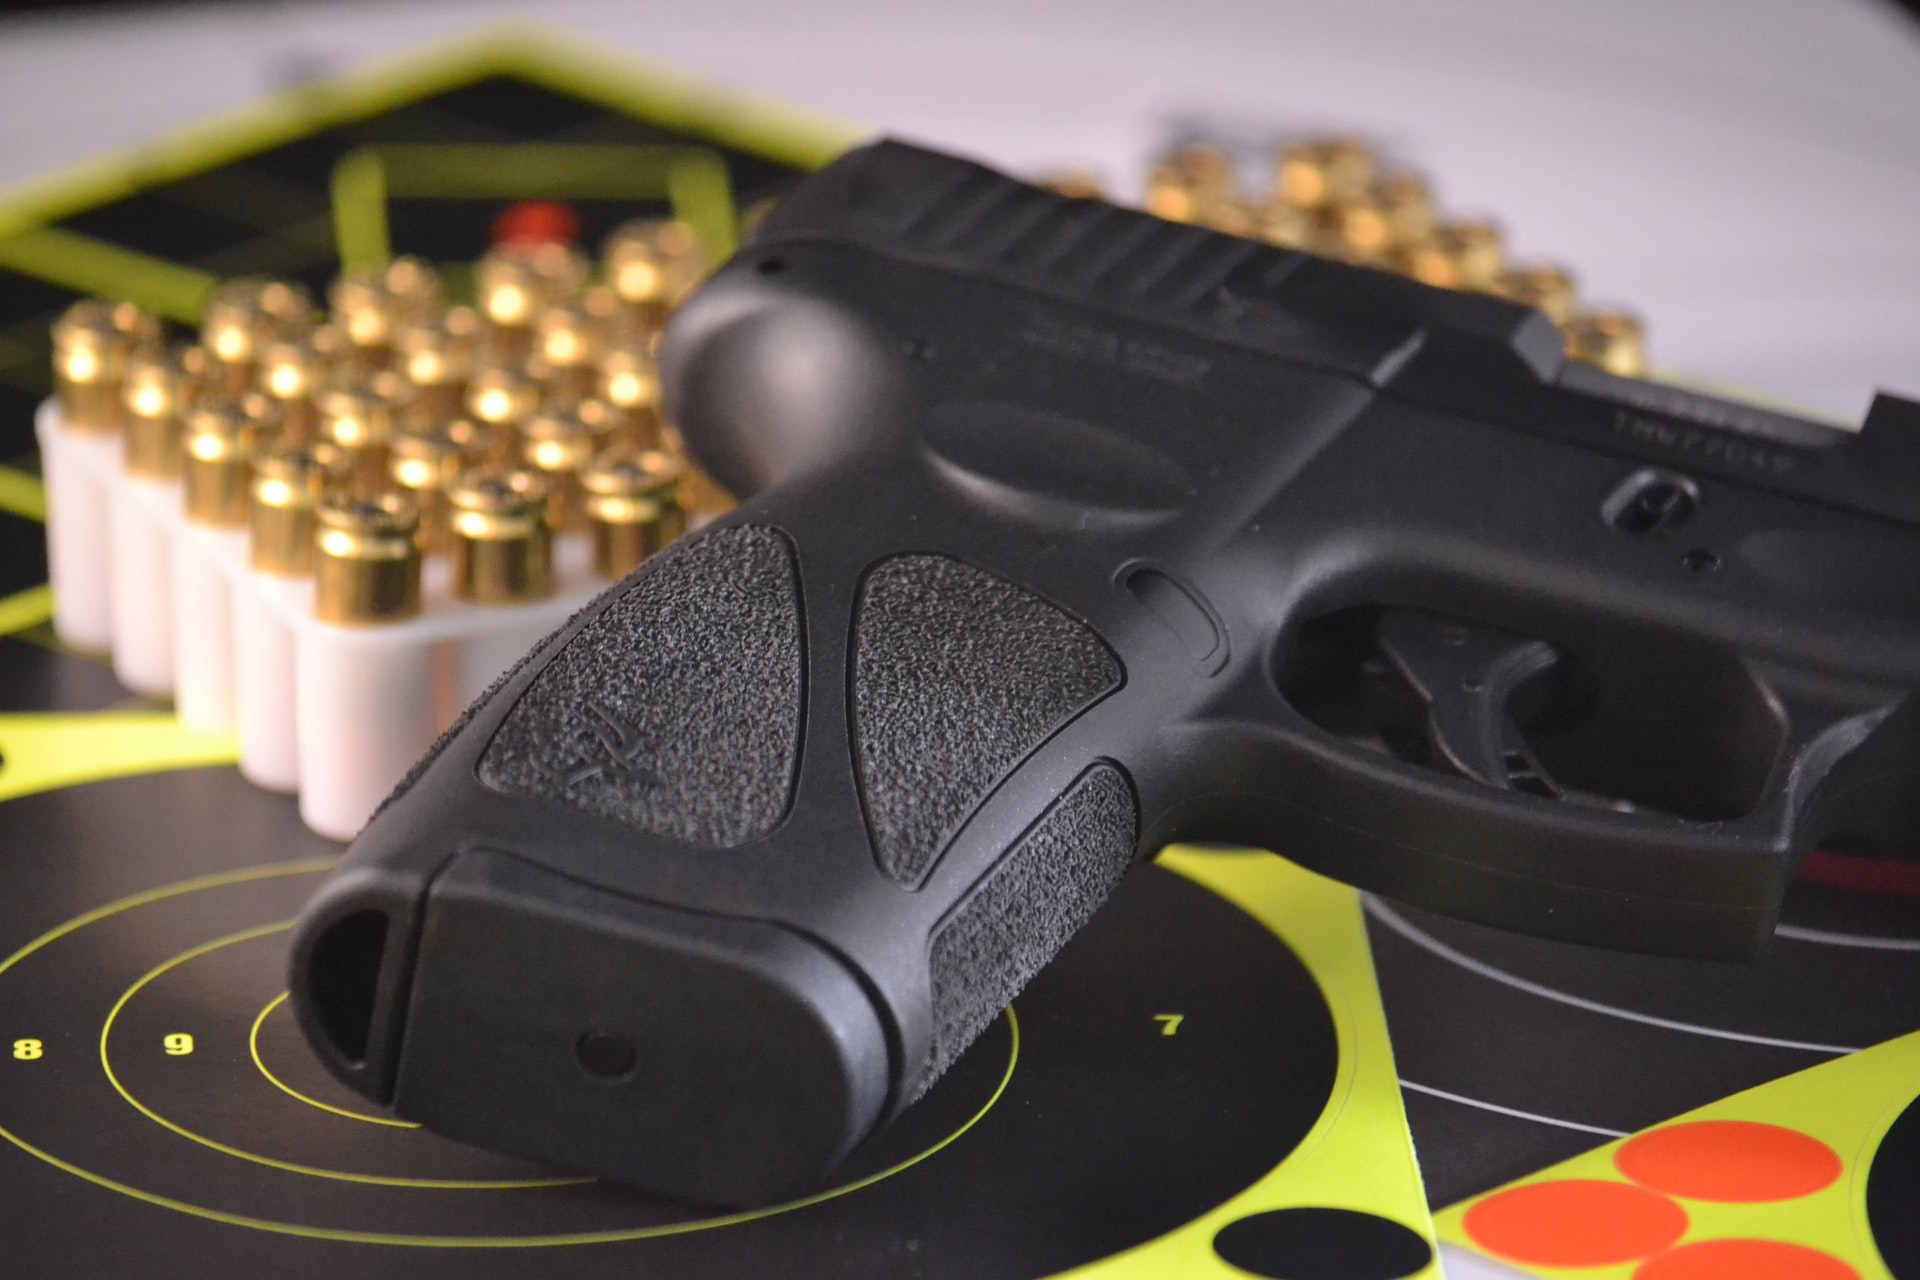 Firearm Sales Likely to Surge Again with Potential Gun Law Reform on Deck for 2021